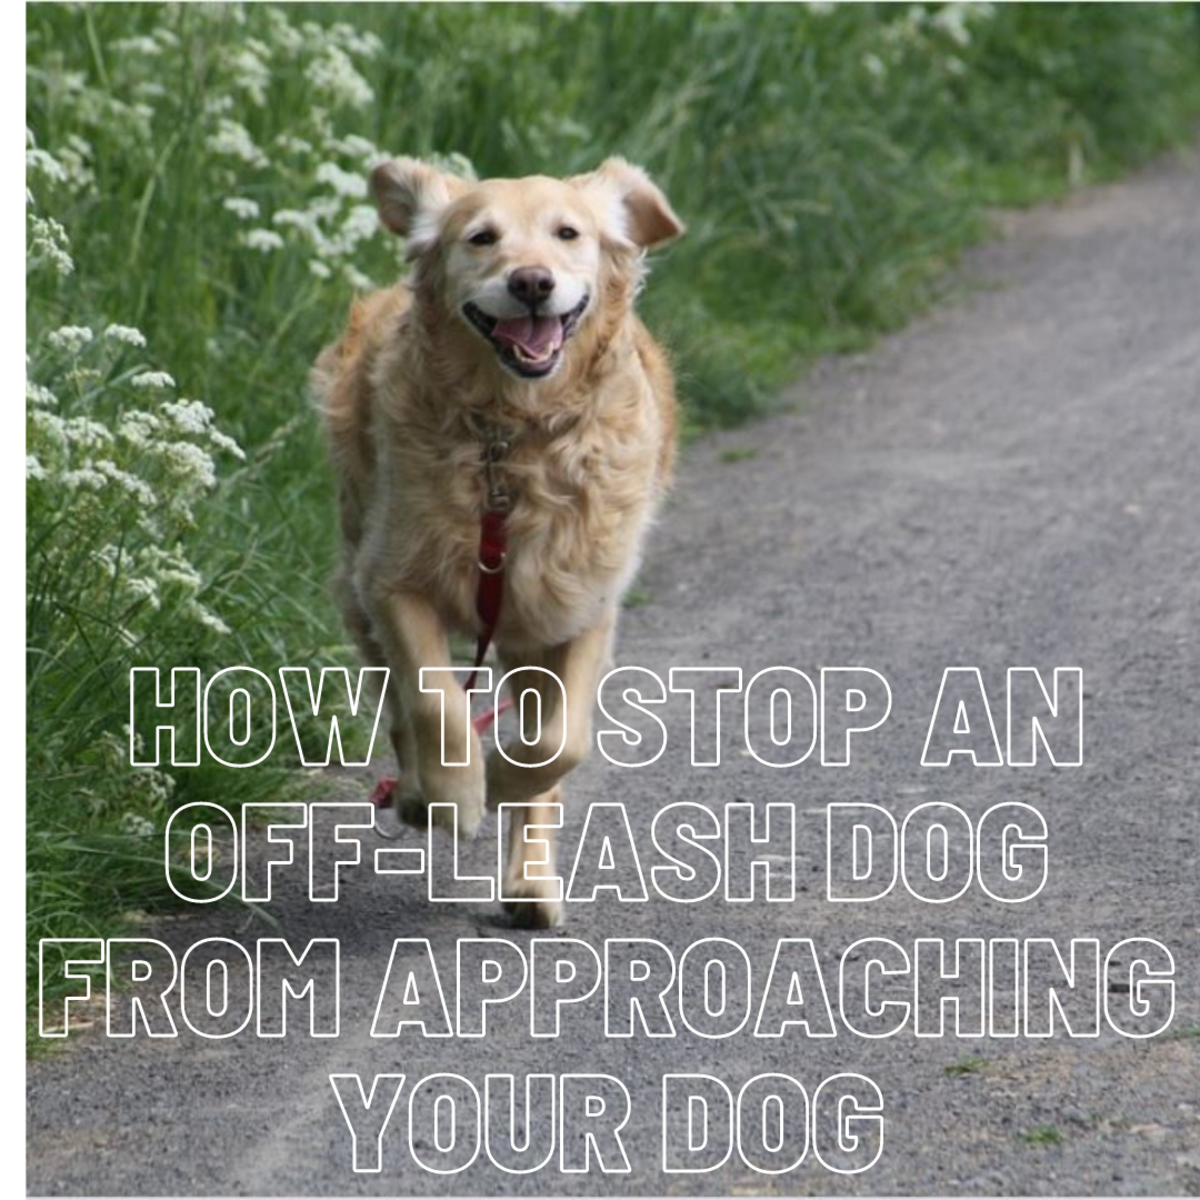 How to Stop an Off-Leash Dog From Approaching Your Dog